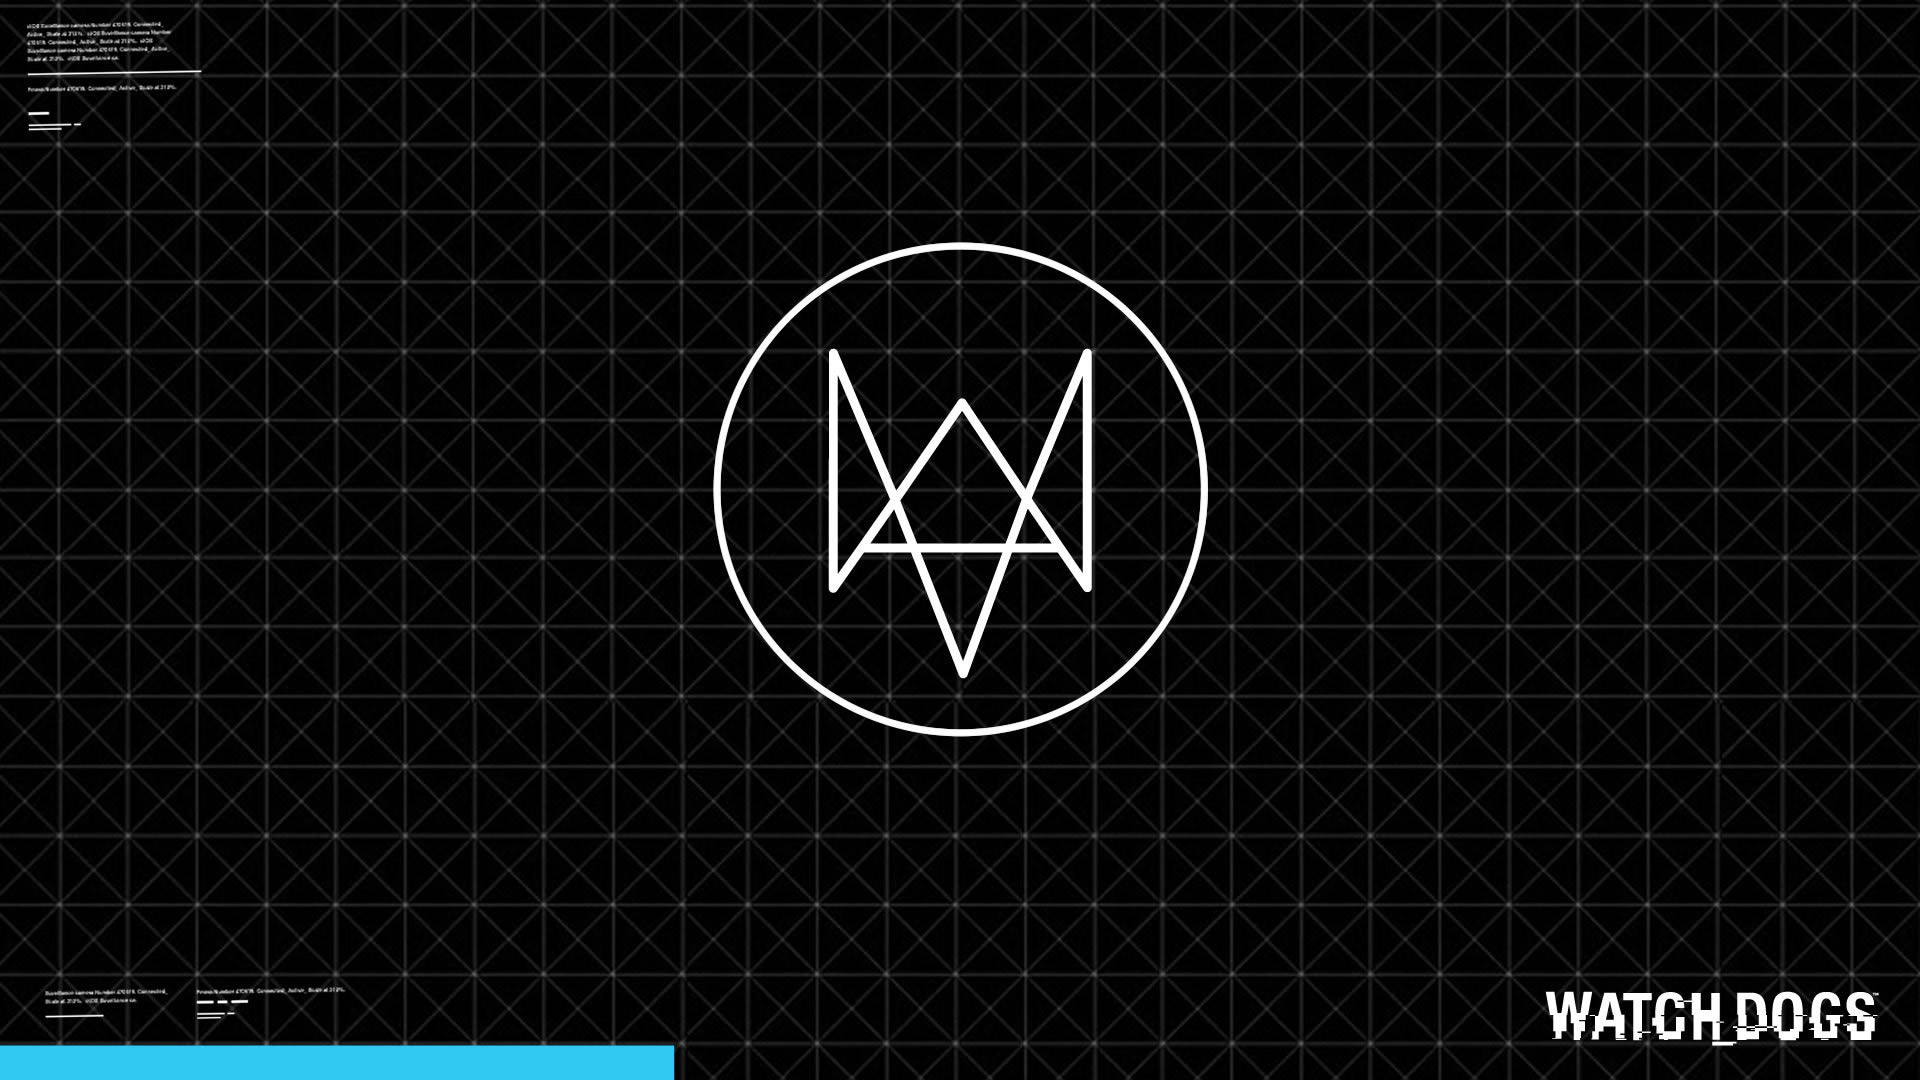 watch dogs game login logo. hd 1080p wallpaper and .